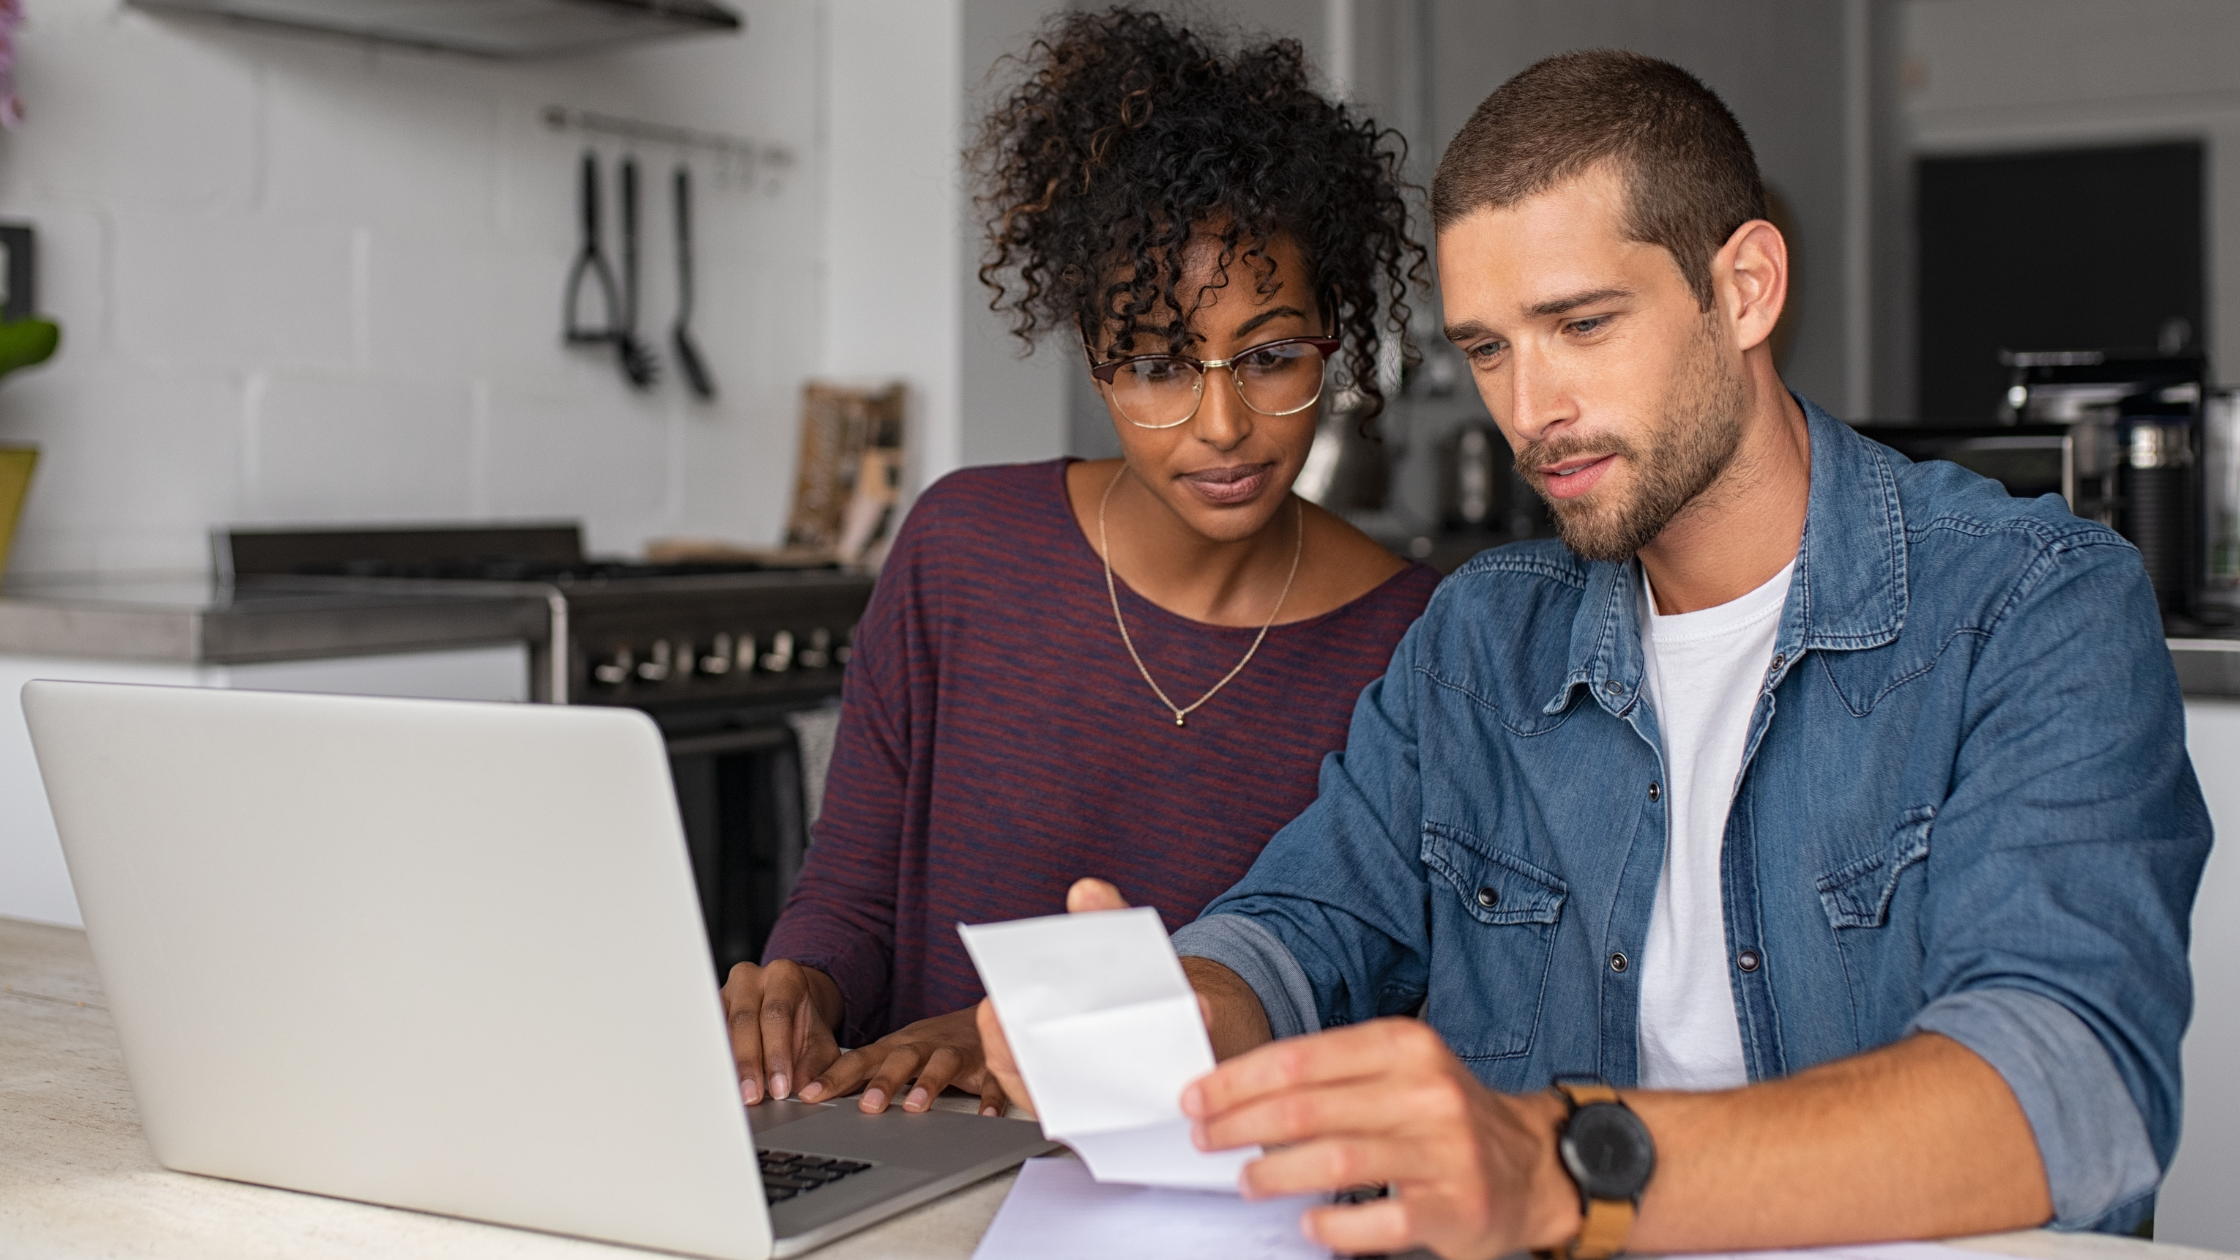 Fall financial checkup blog cover banner - Young couple sitting at table with laptop reviewing budget